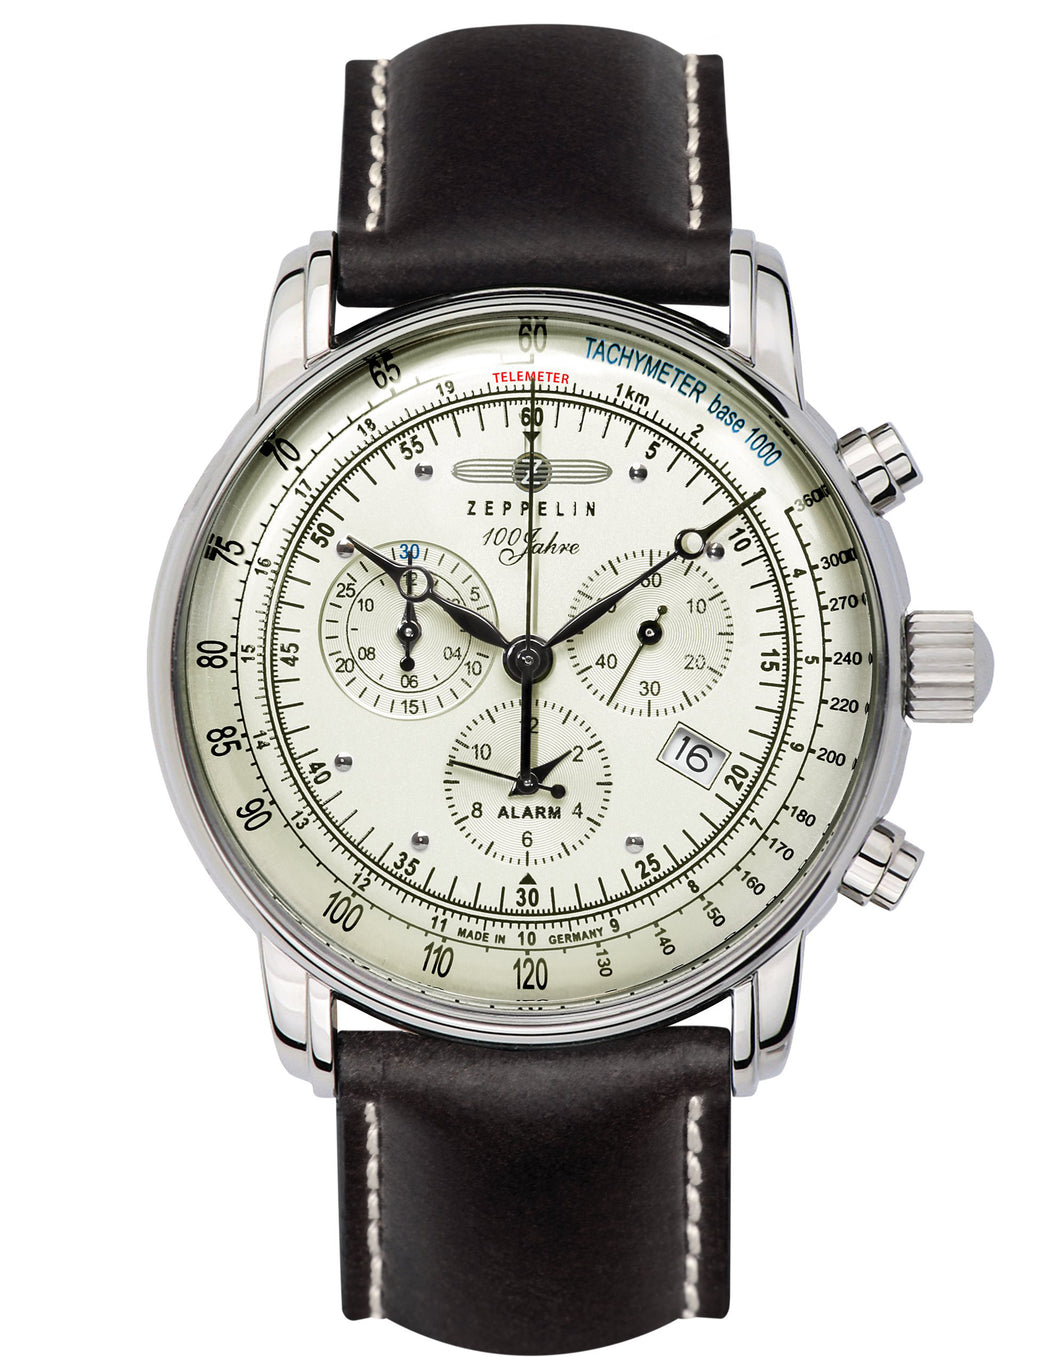 Zeppelin Watch | 100 Years Zeppelin ED. 1 Alarm Chrono | 8680-3